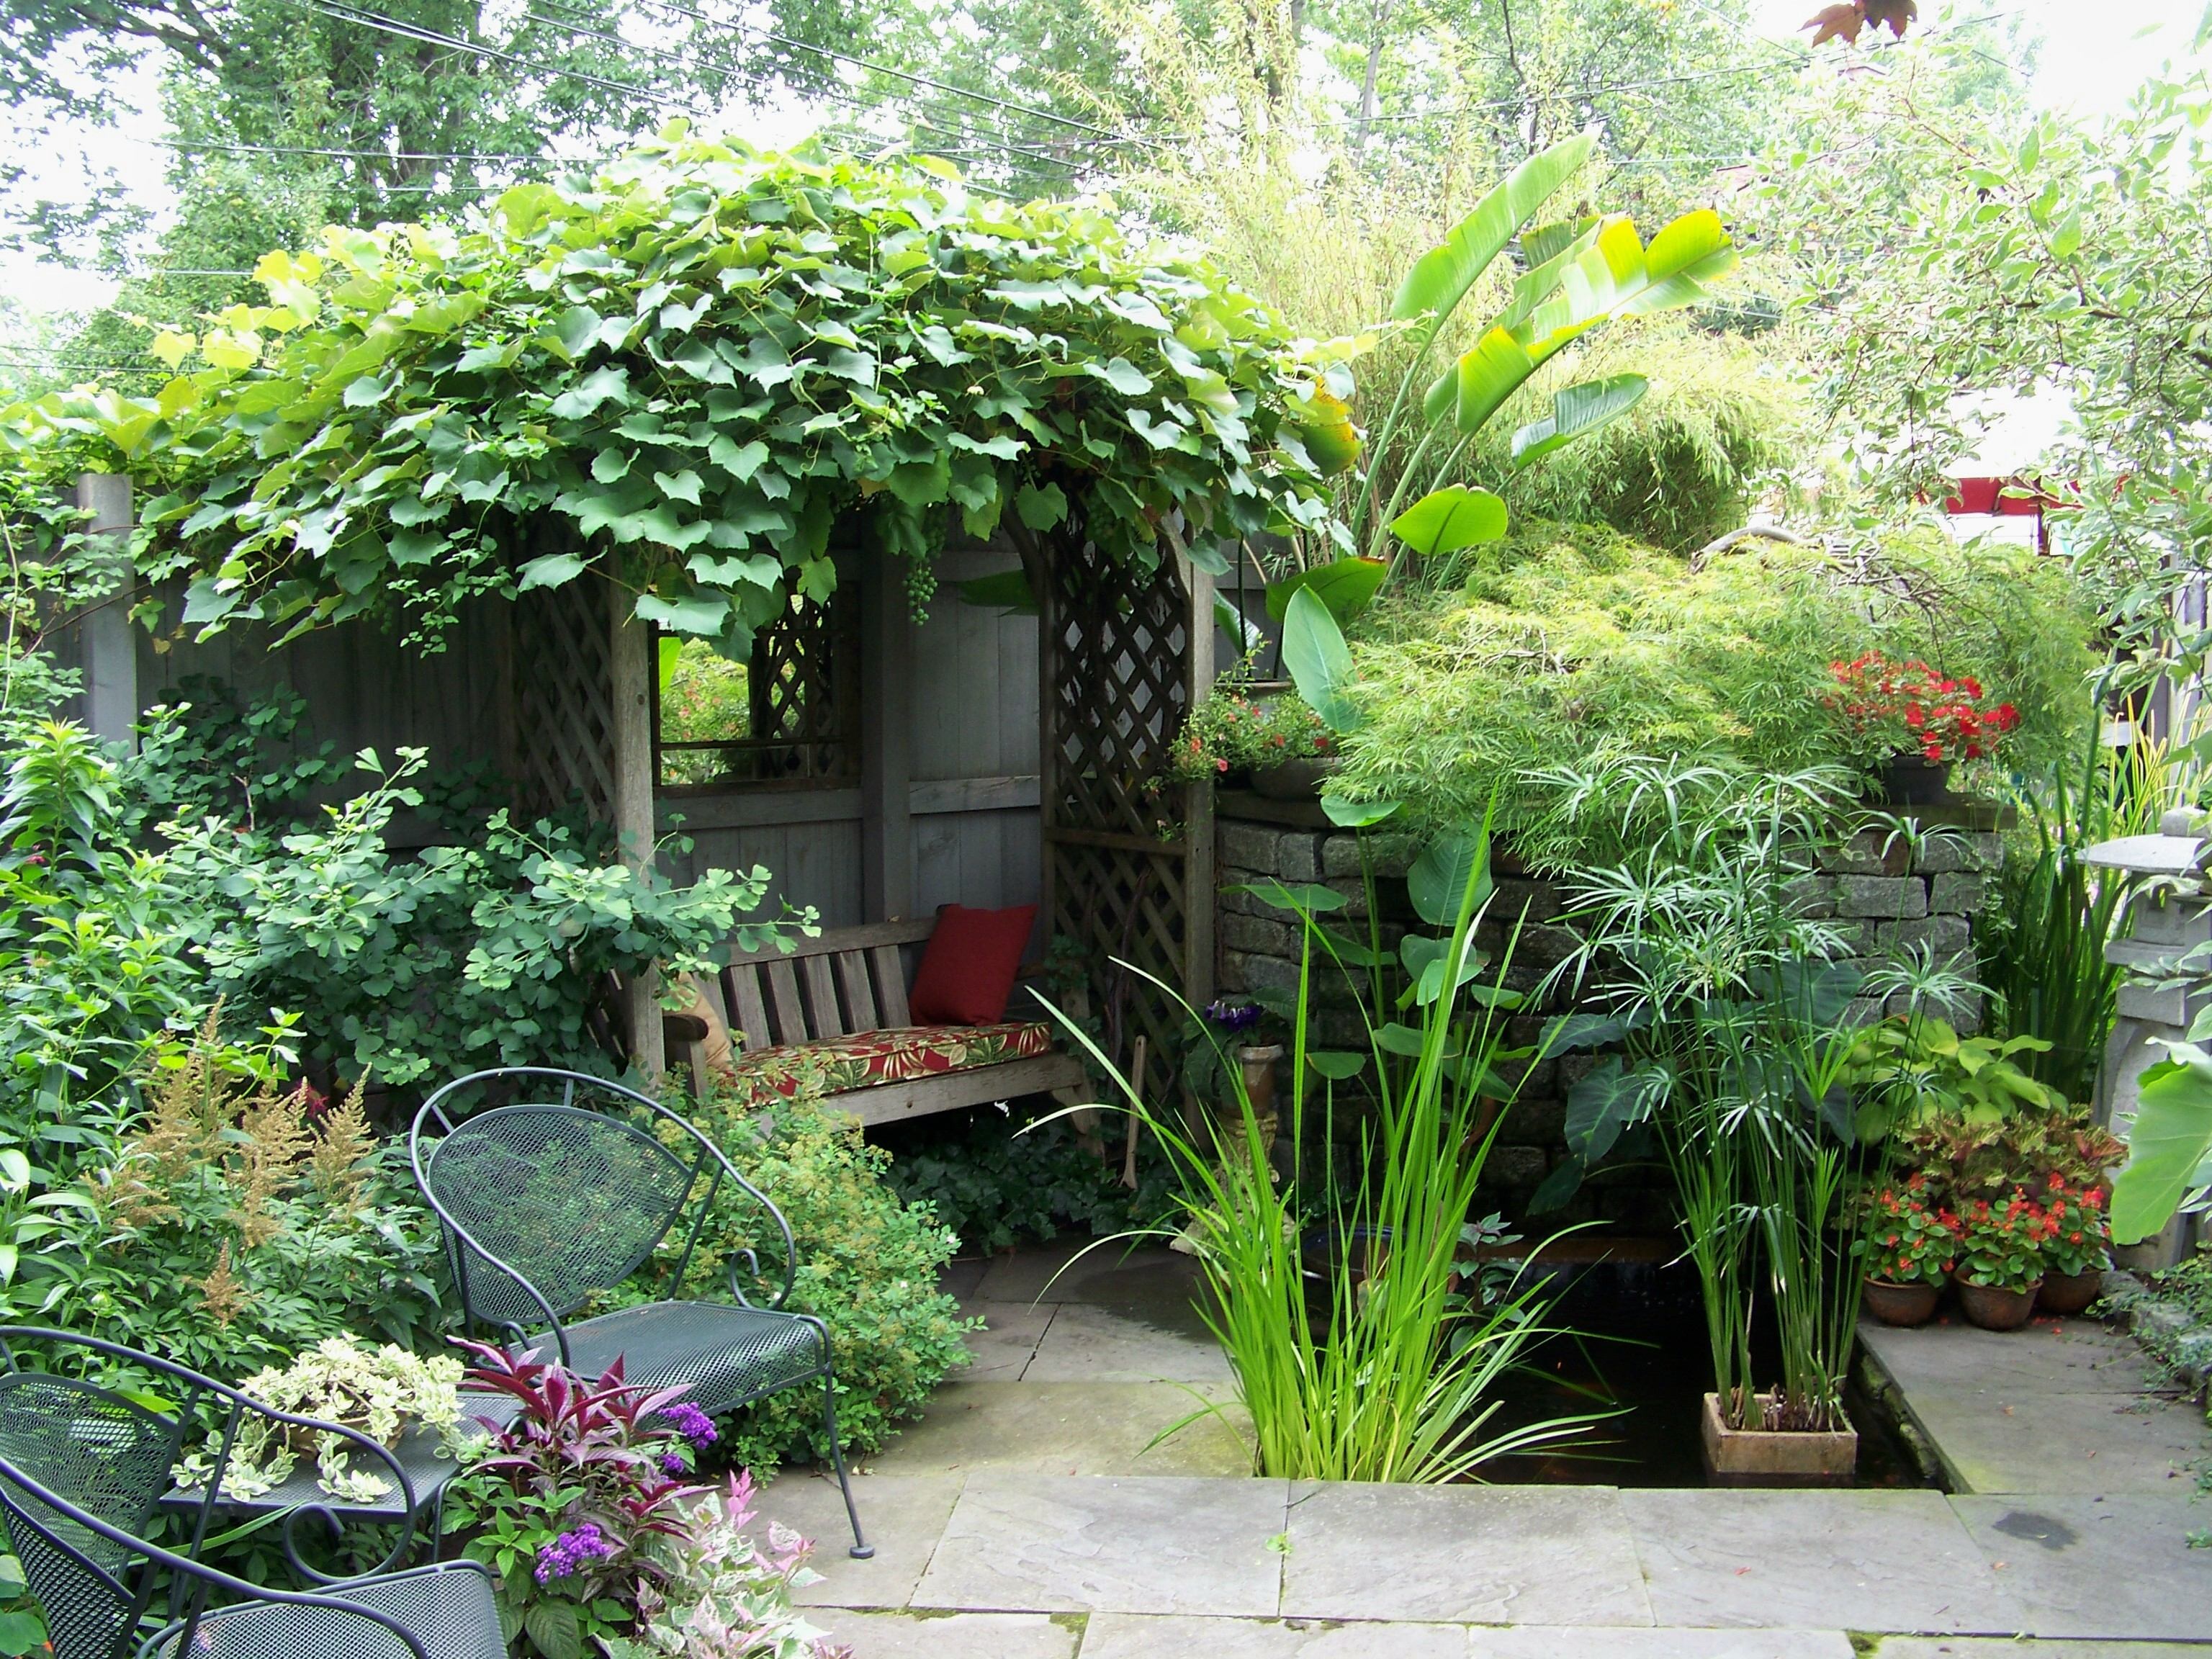 5 amazing small yard garden ideas nlc loans for Ideas para tu jardin paisajismo